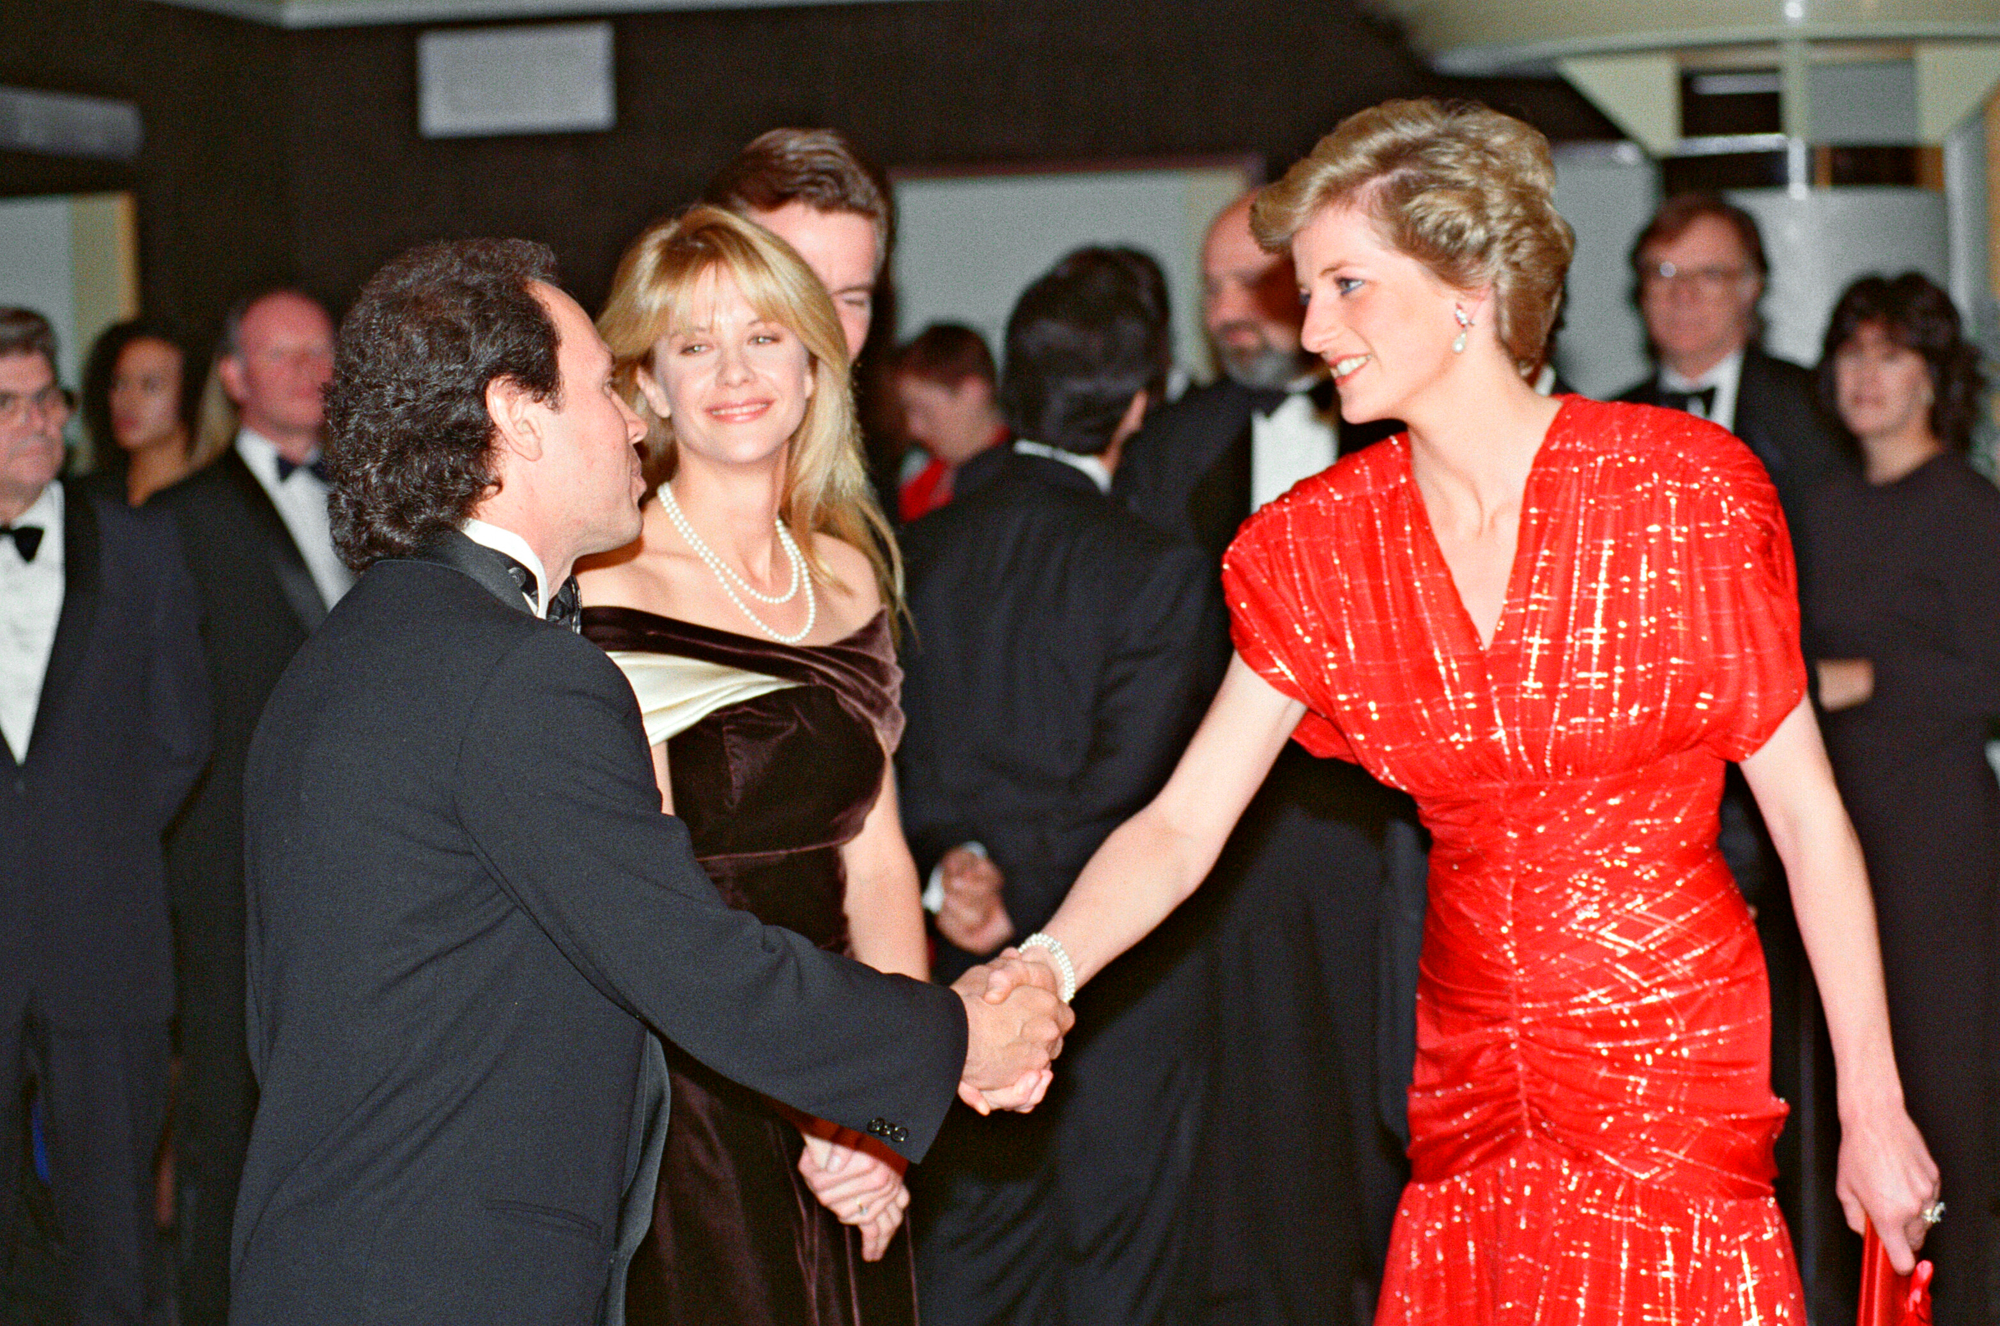 Princess Diana When Harry Met Sally Premiere